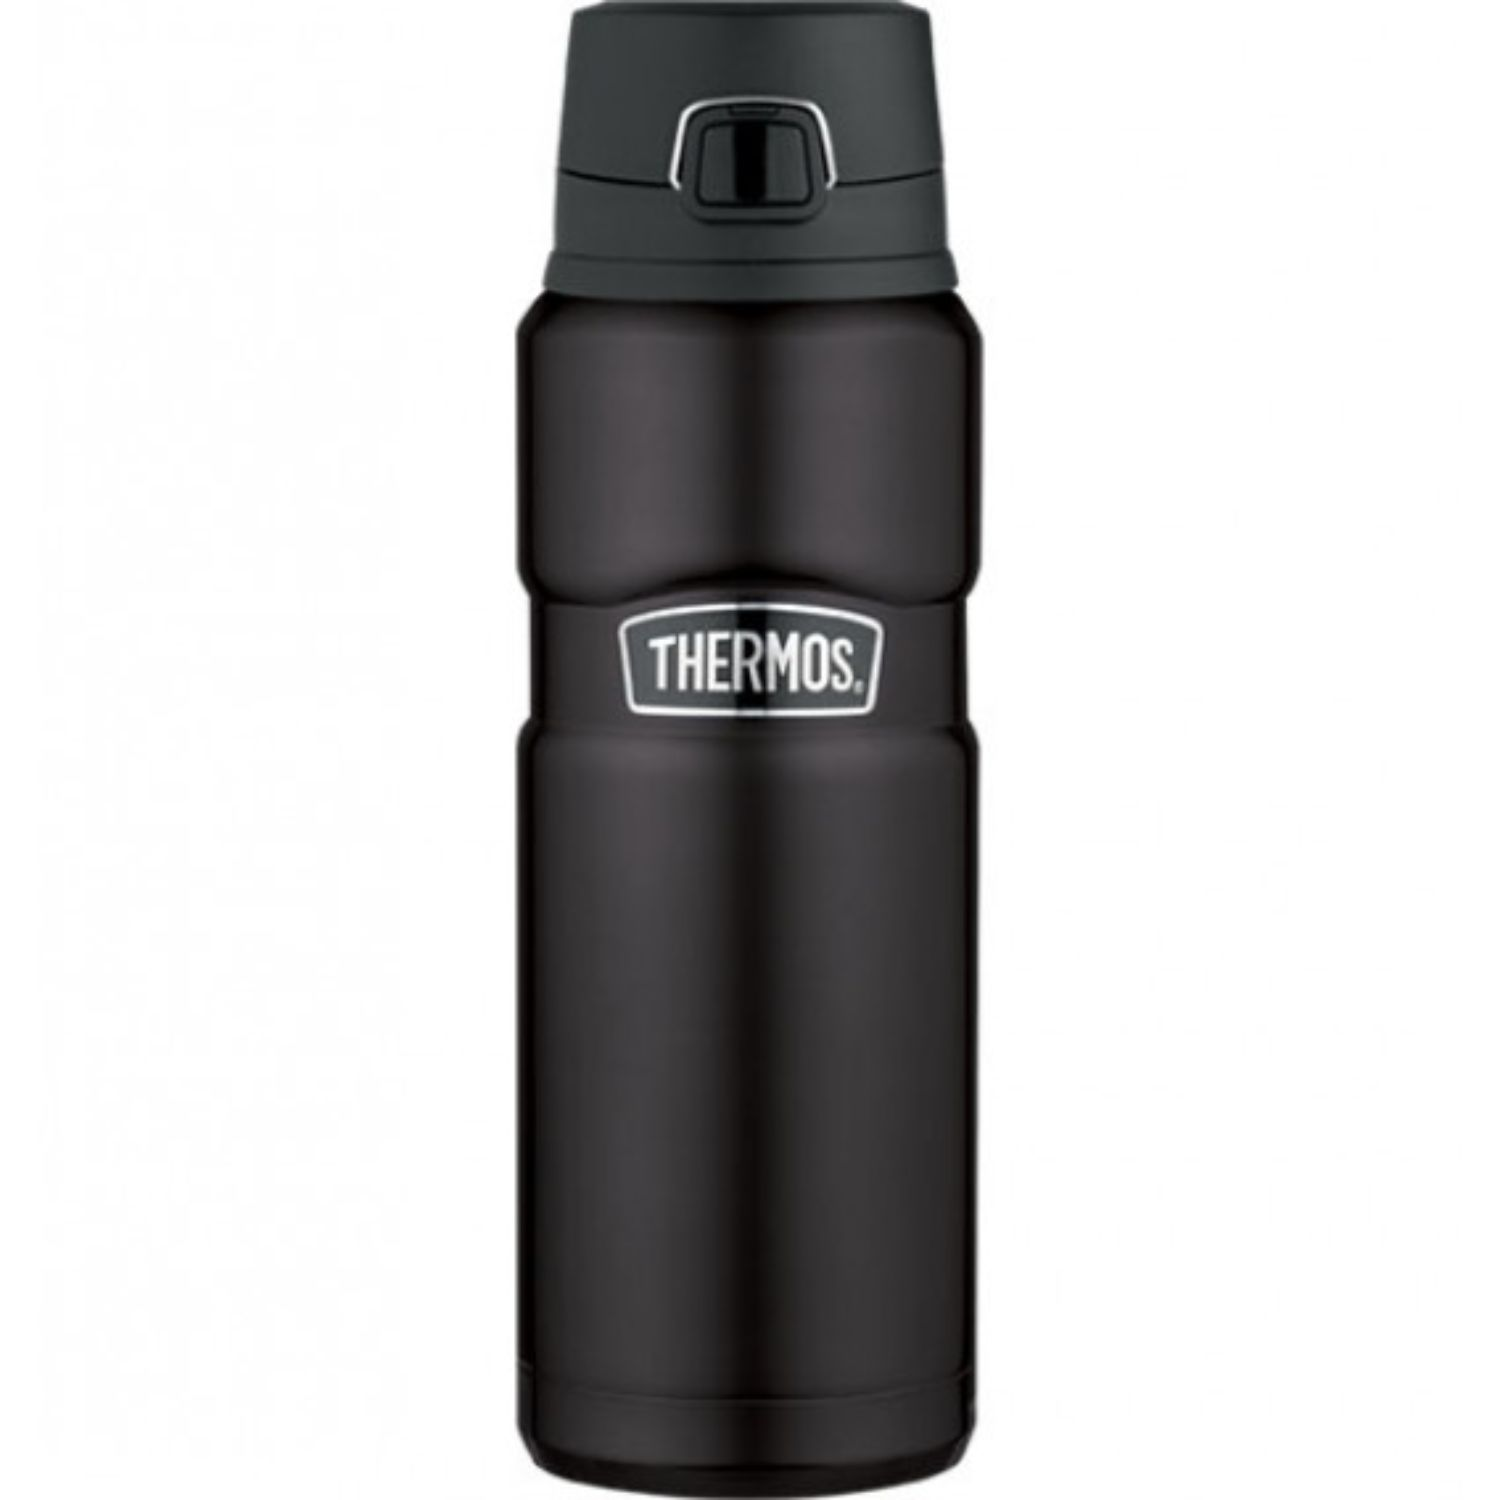 Thermos 24 oz Stainless Steel Drink Bottle Black